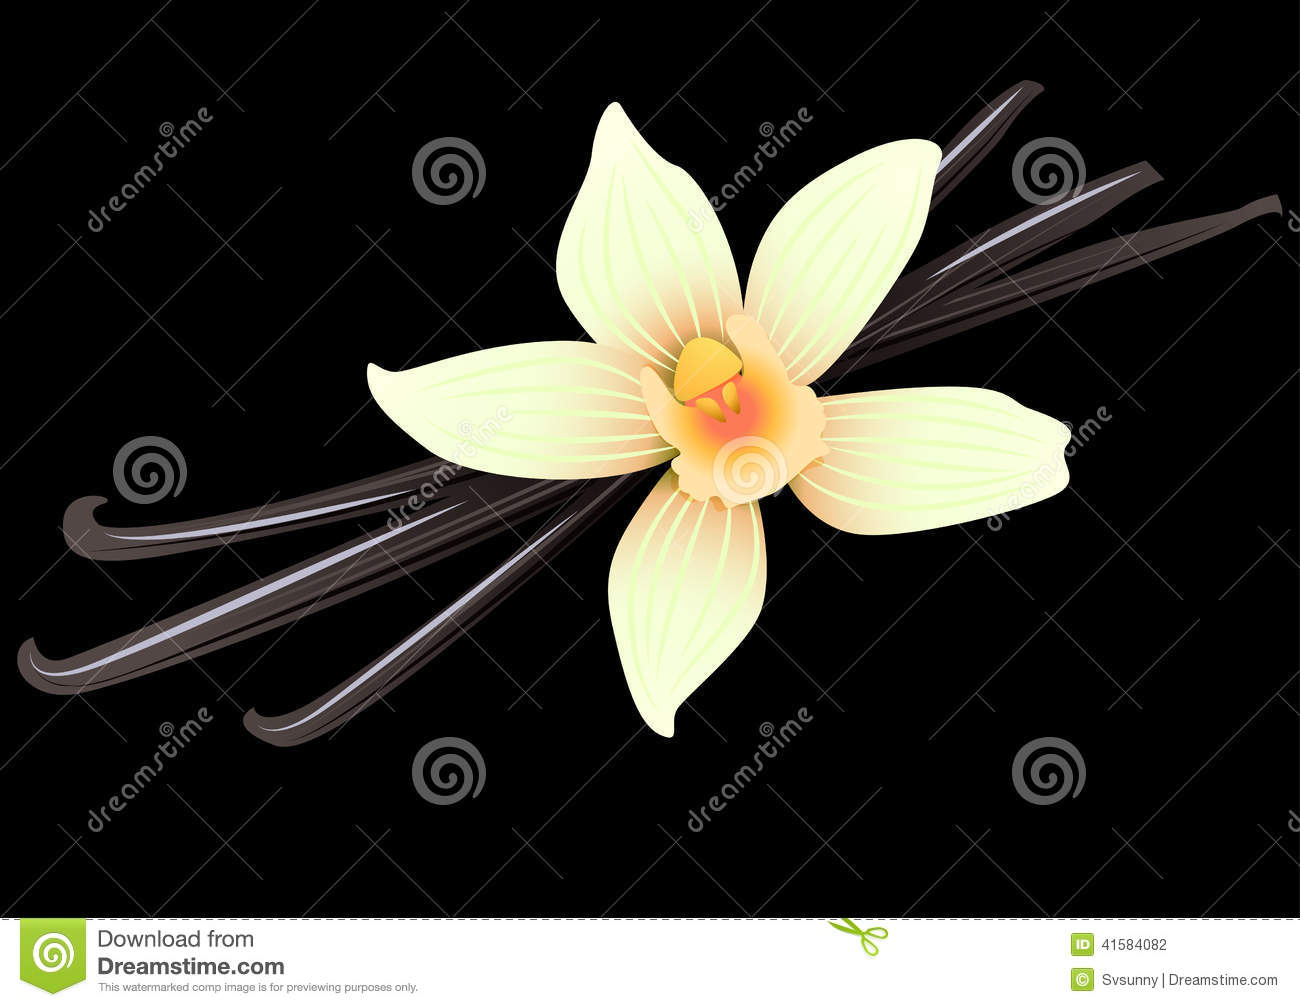 cosses et fleur de vanille illustration stock - image: 41584082